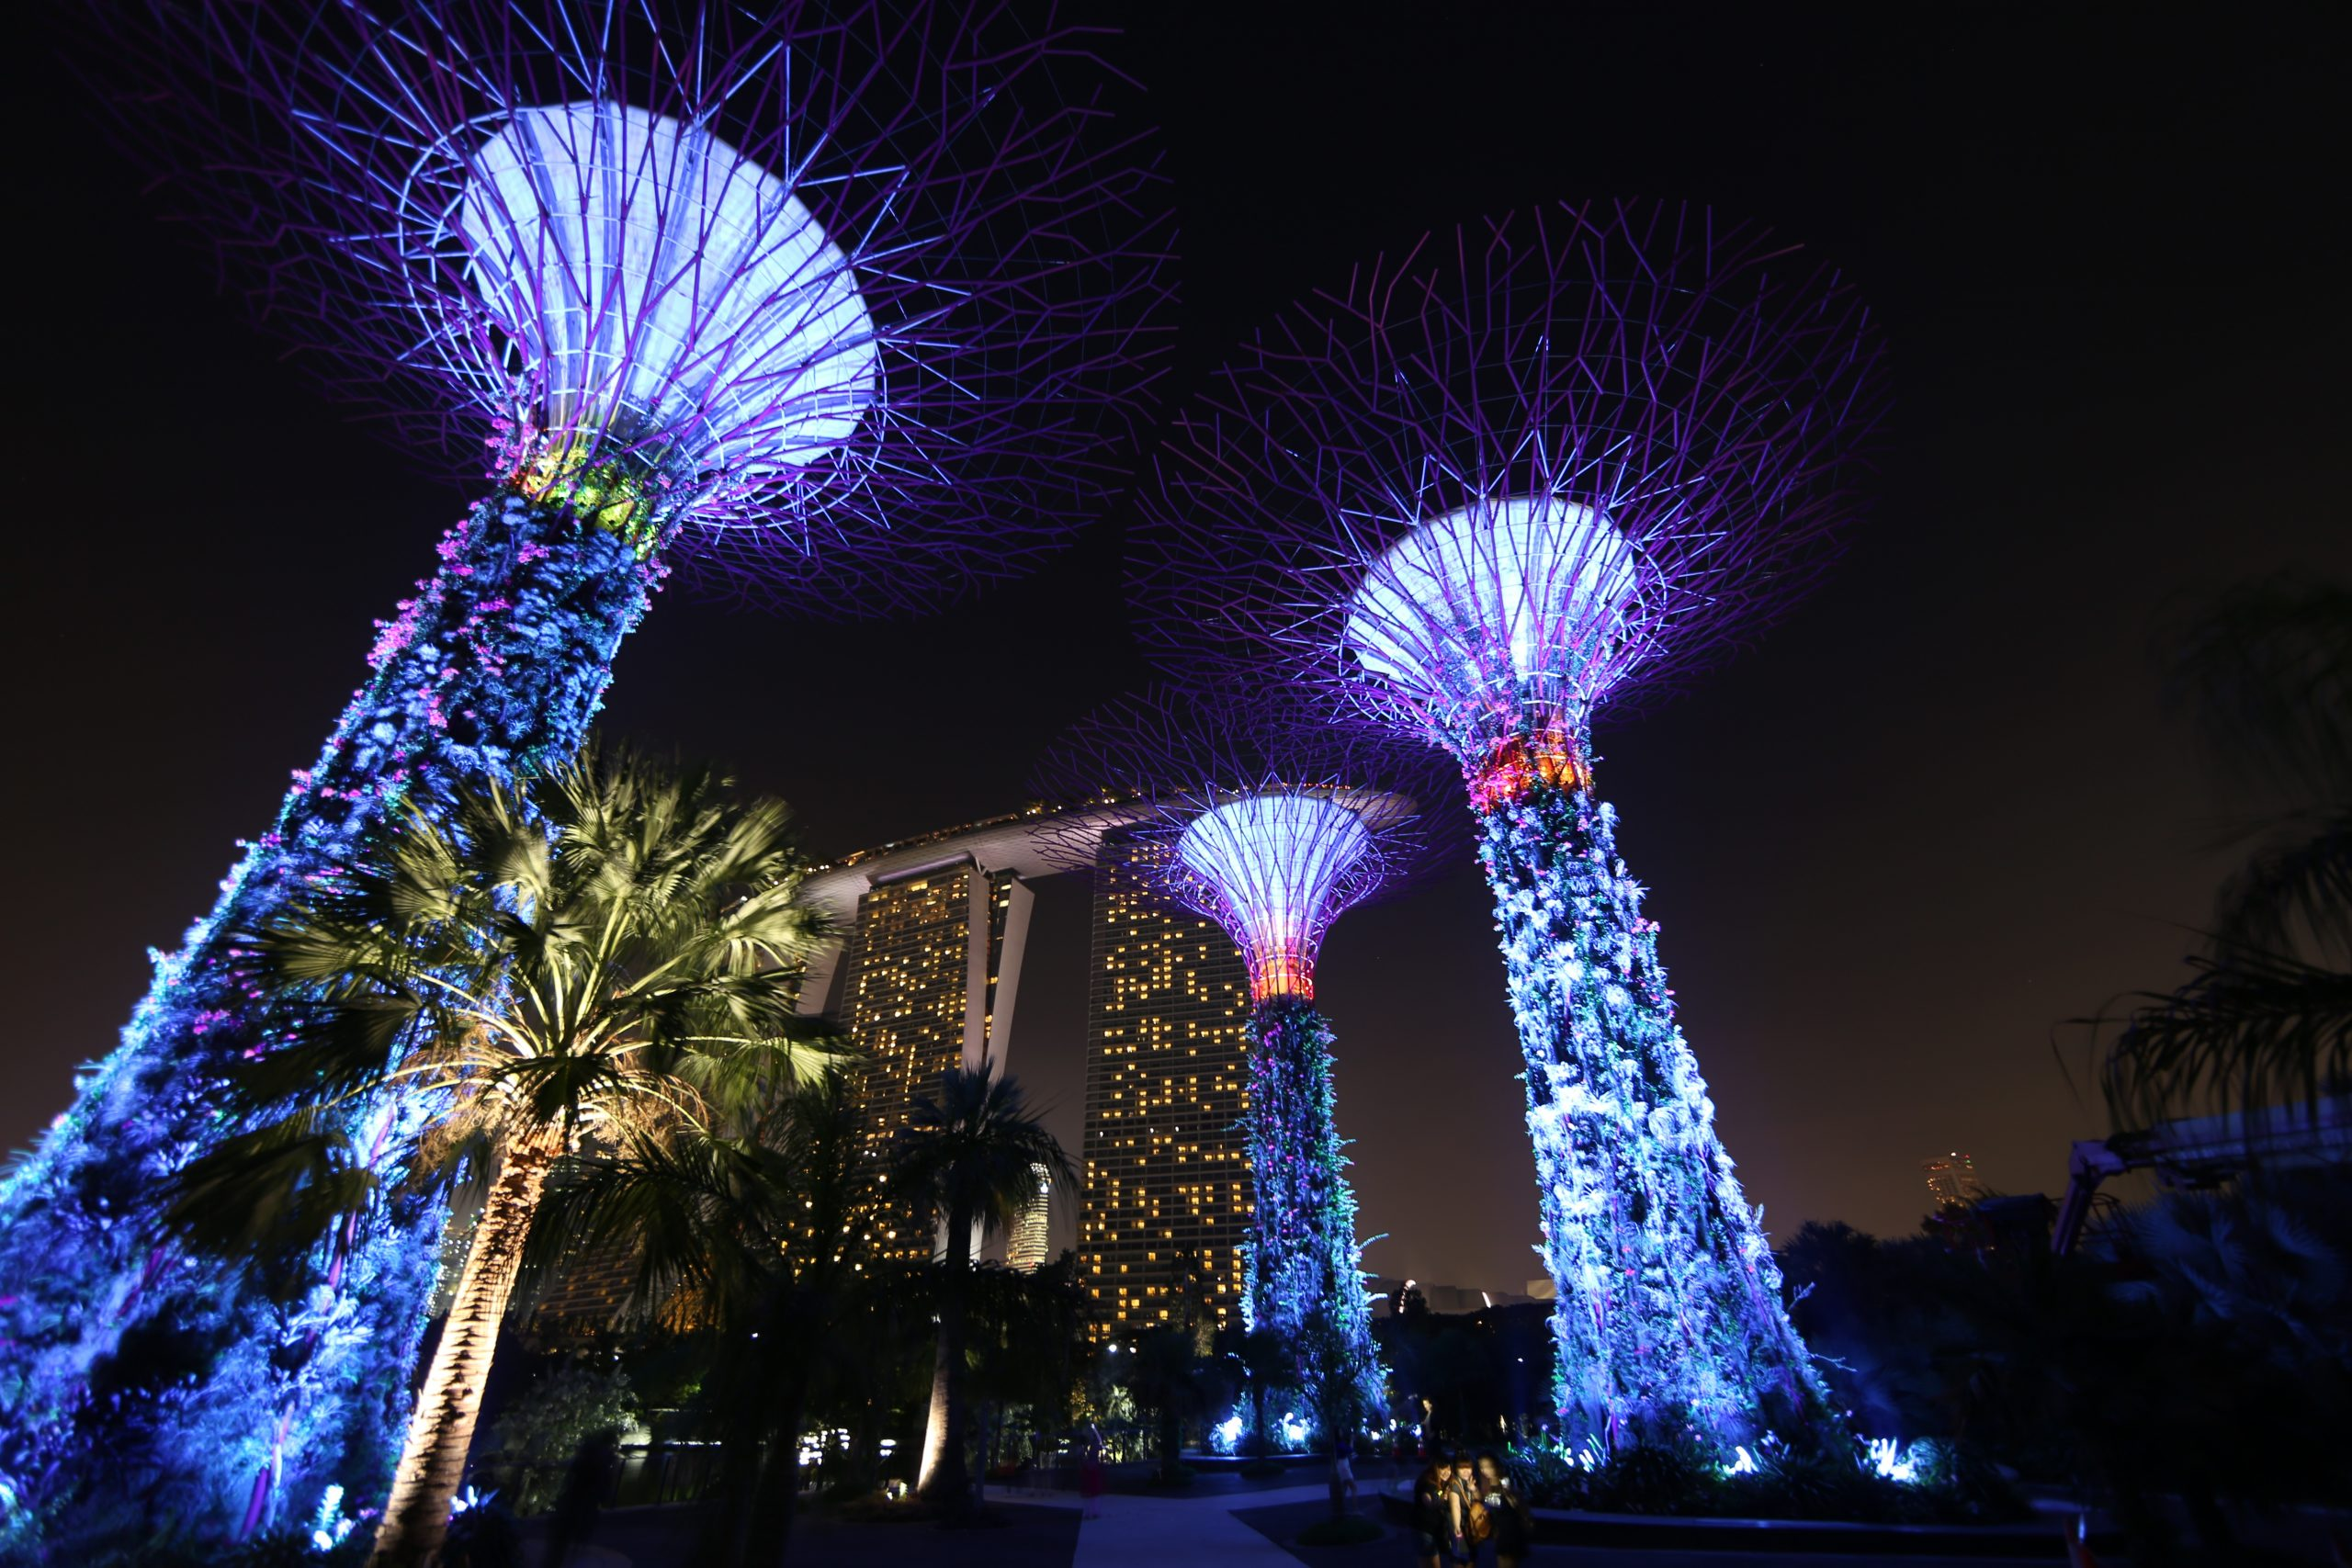 Gardens by the bay @ night